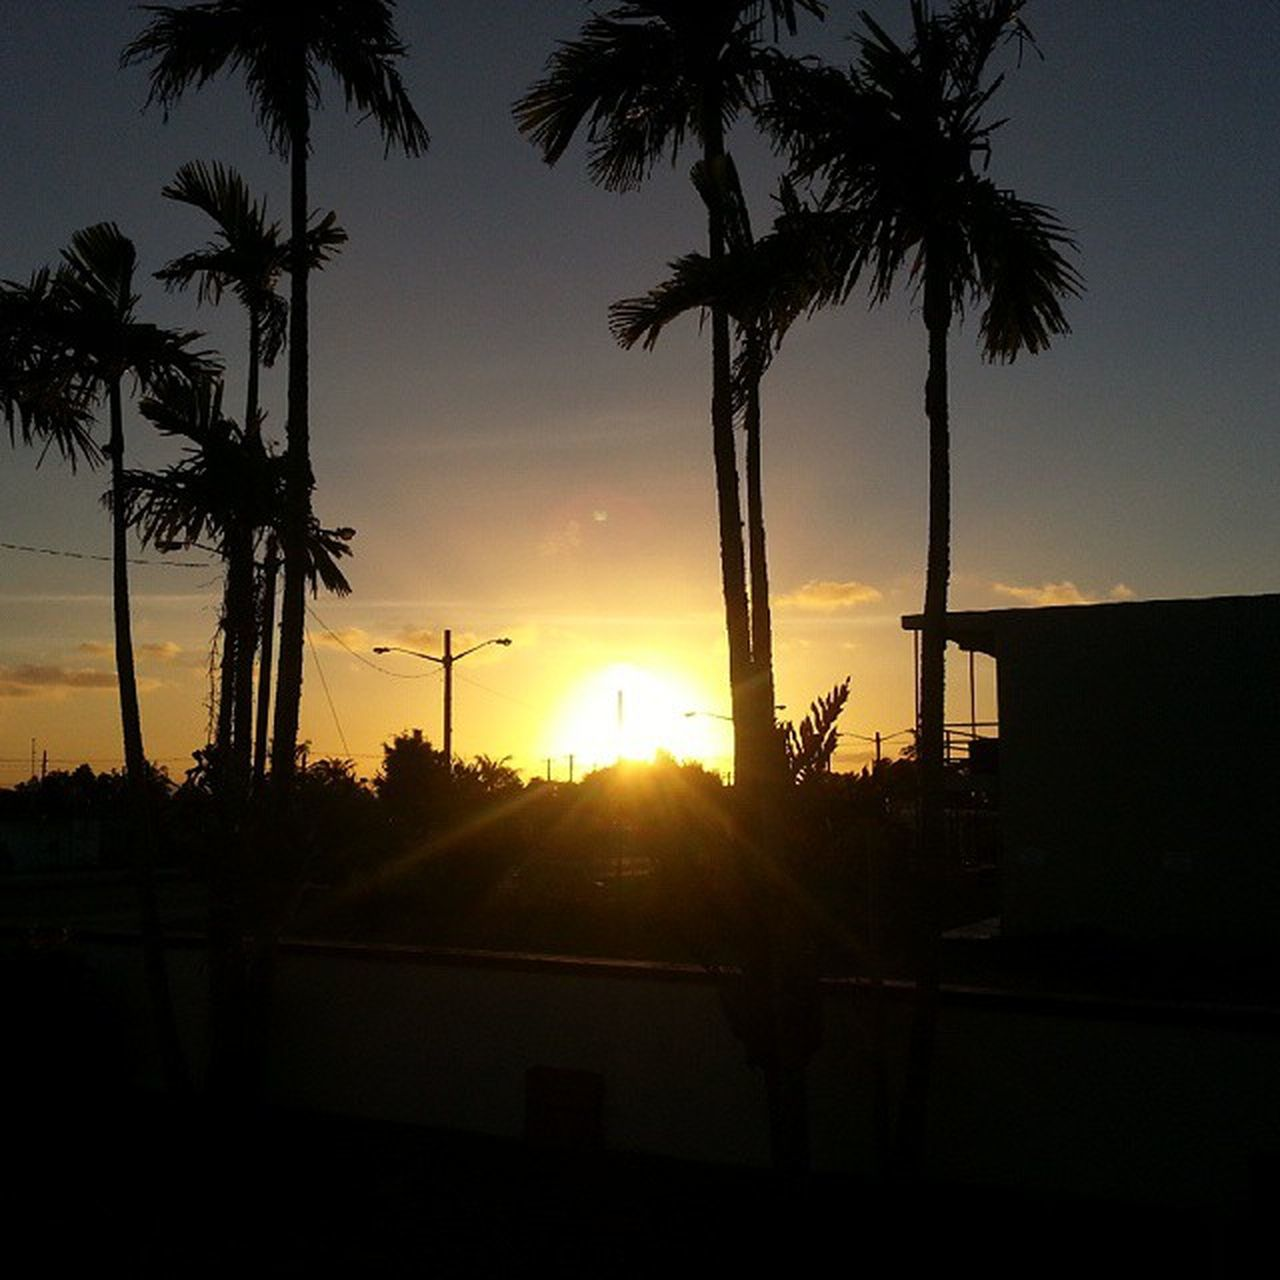 Sunset in the vil 2015  CamelDay Nofilter S3only sunset GUdlife dusk orangecoloredsky silouette